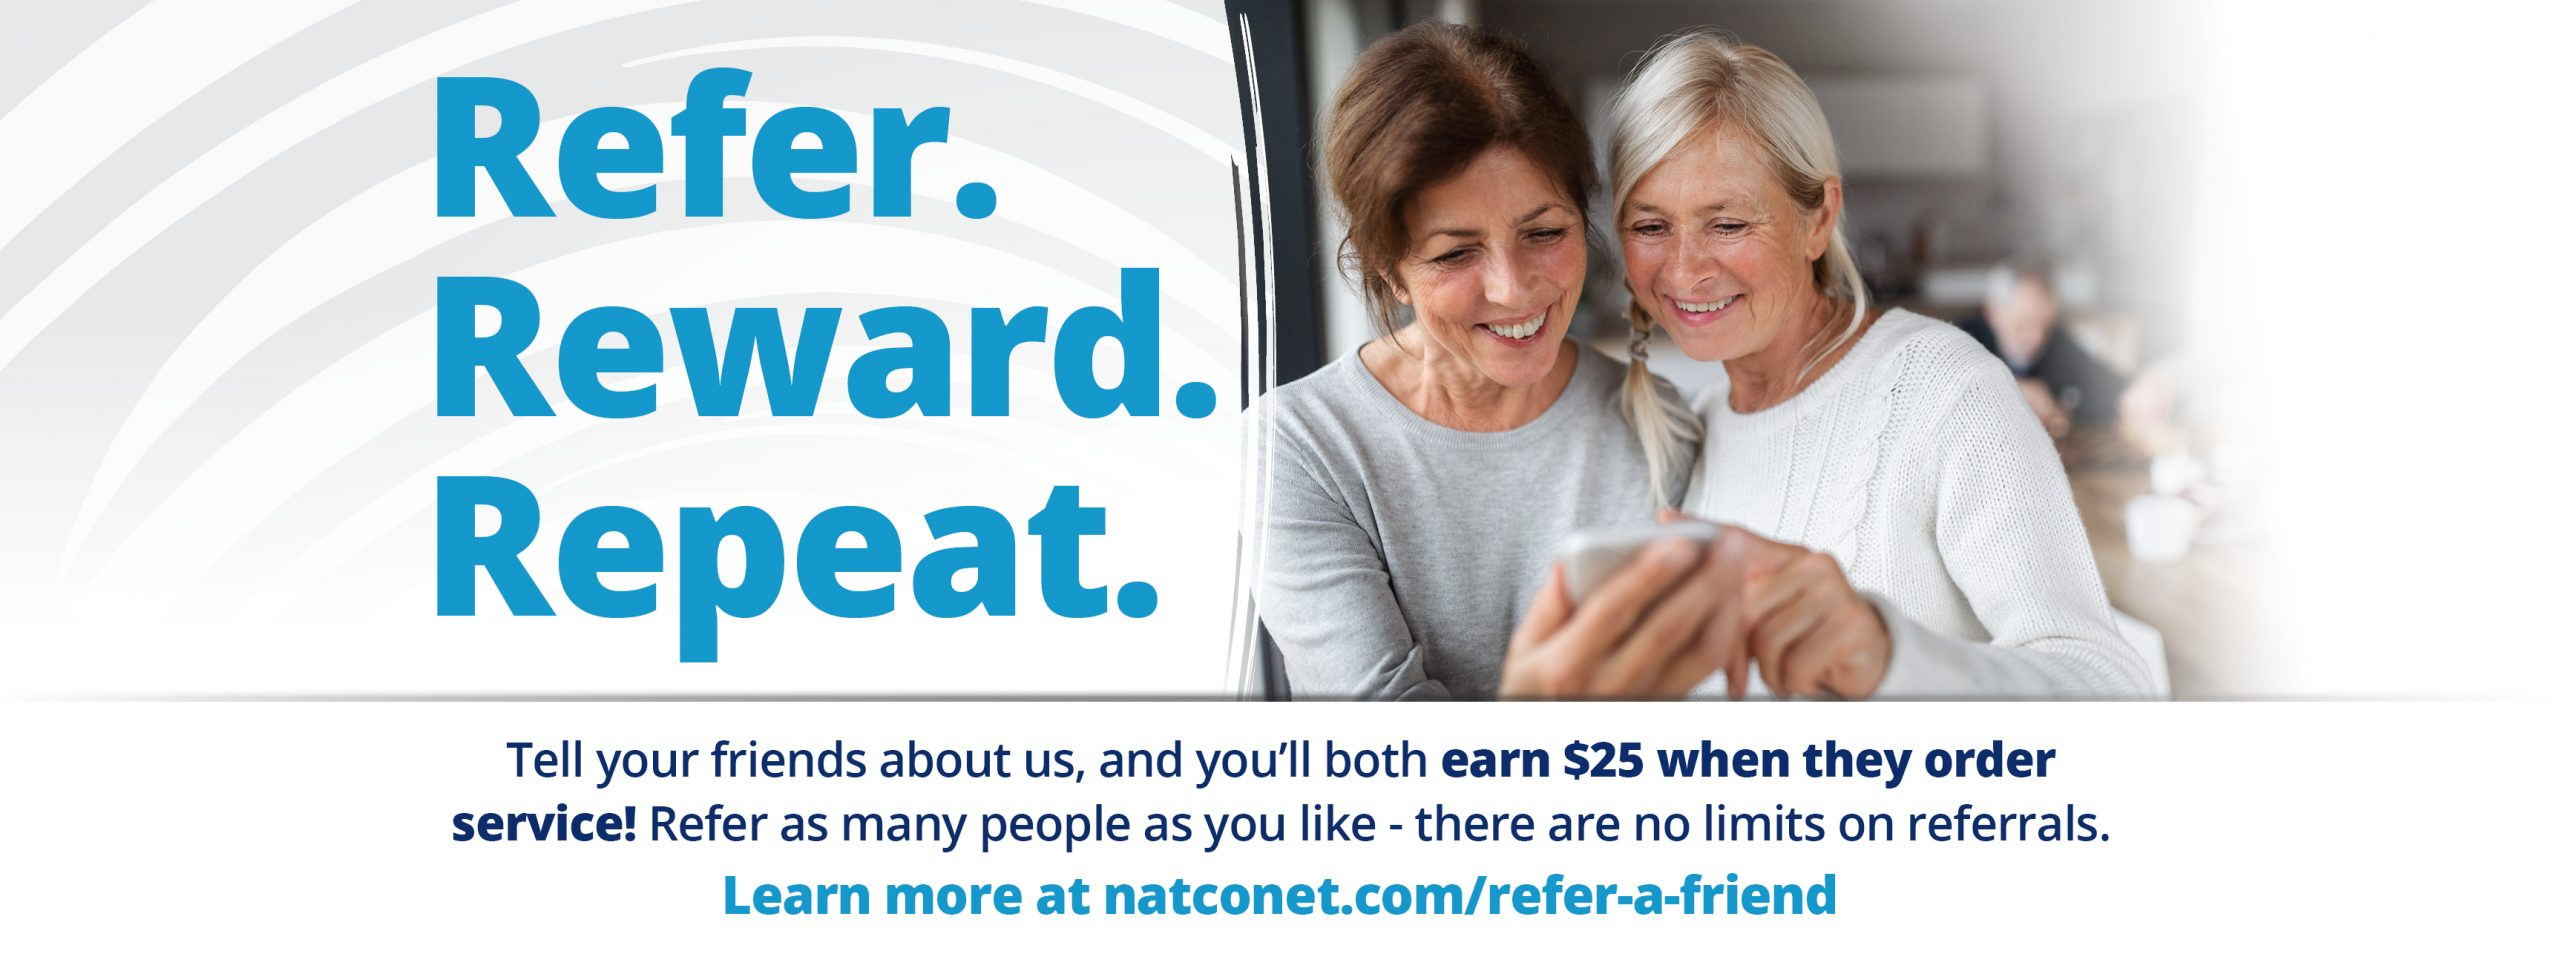 Refer. Reward. Repeat. Refer your friends to NATCO and you'll both earn $25 when they sign up for service!